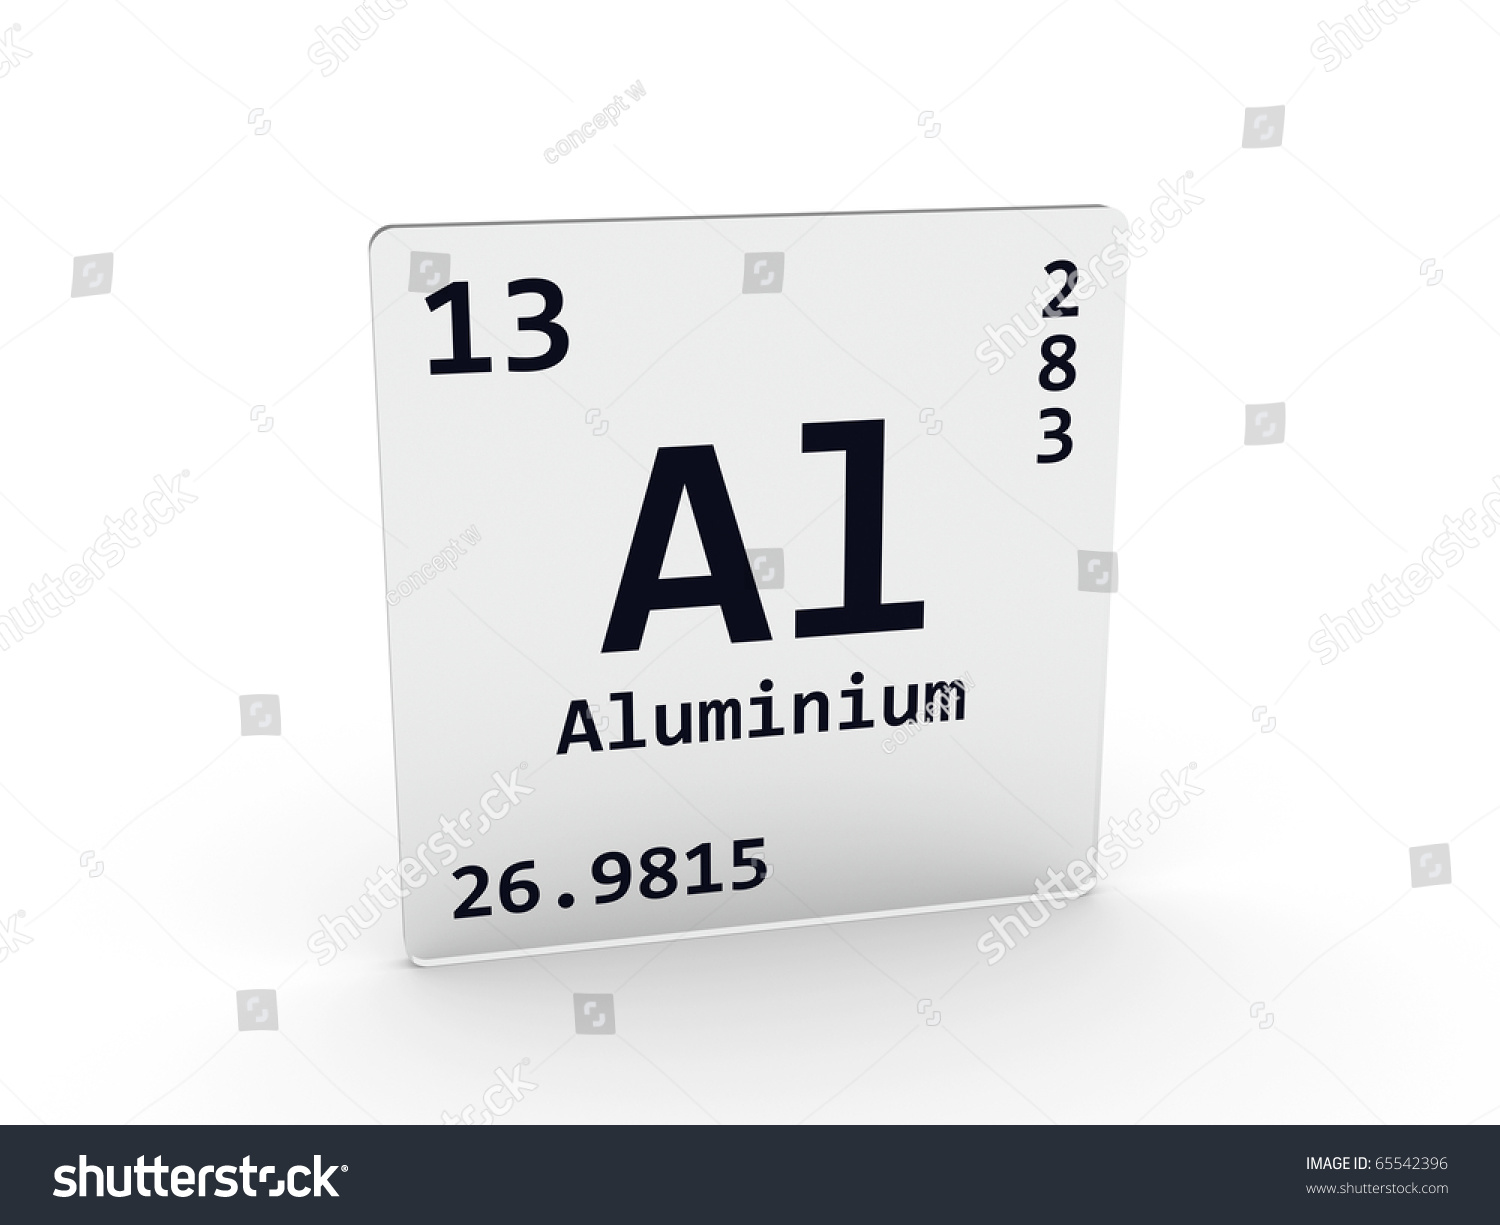 Aluminium Symbol - Al Stock Photo 65542396 : Shutterstock